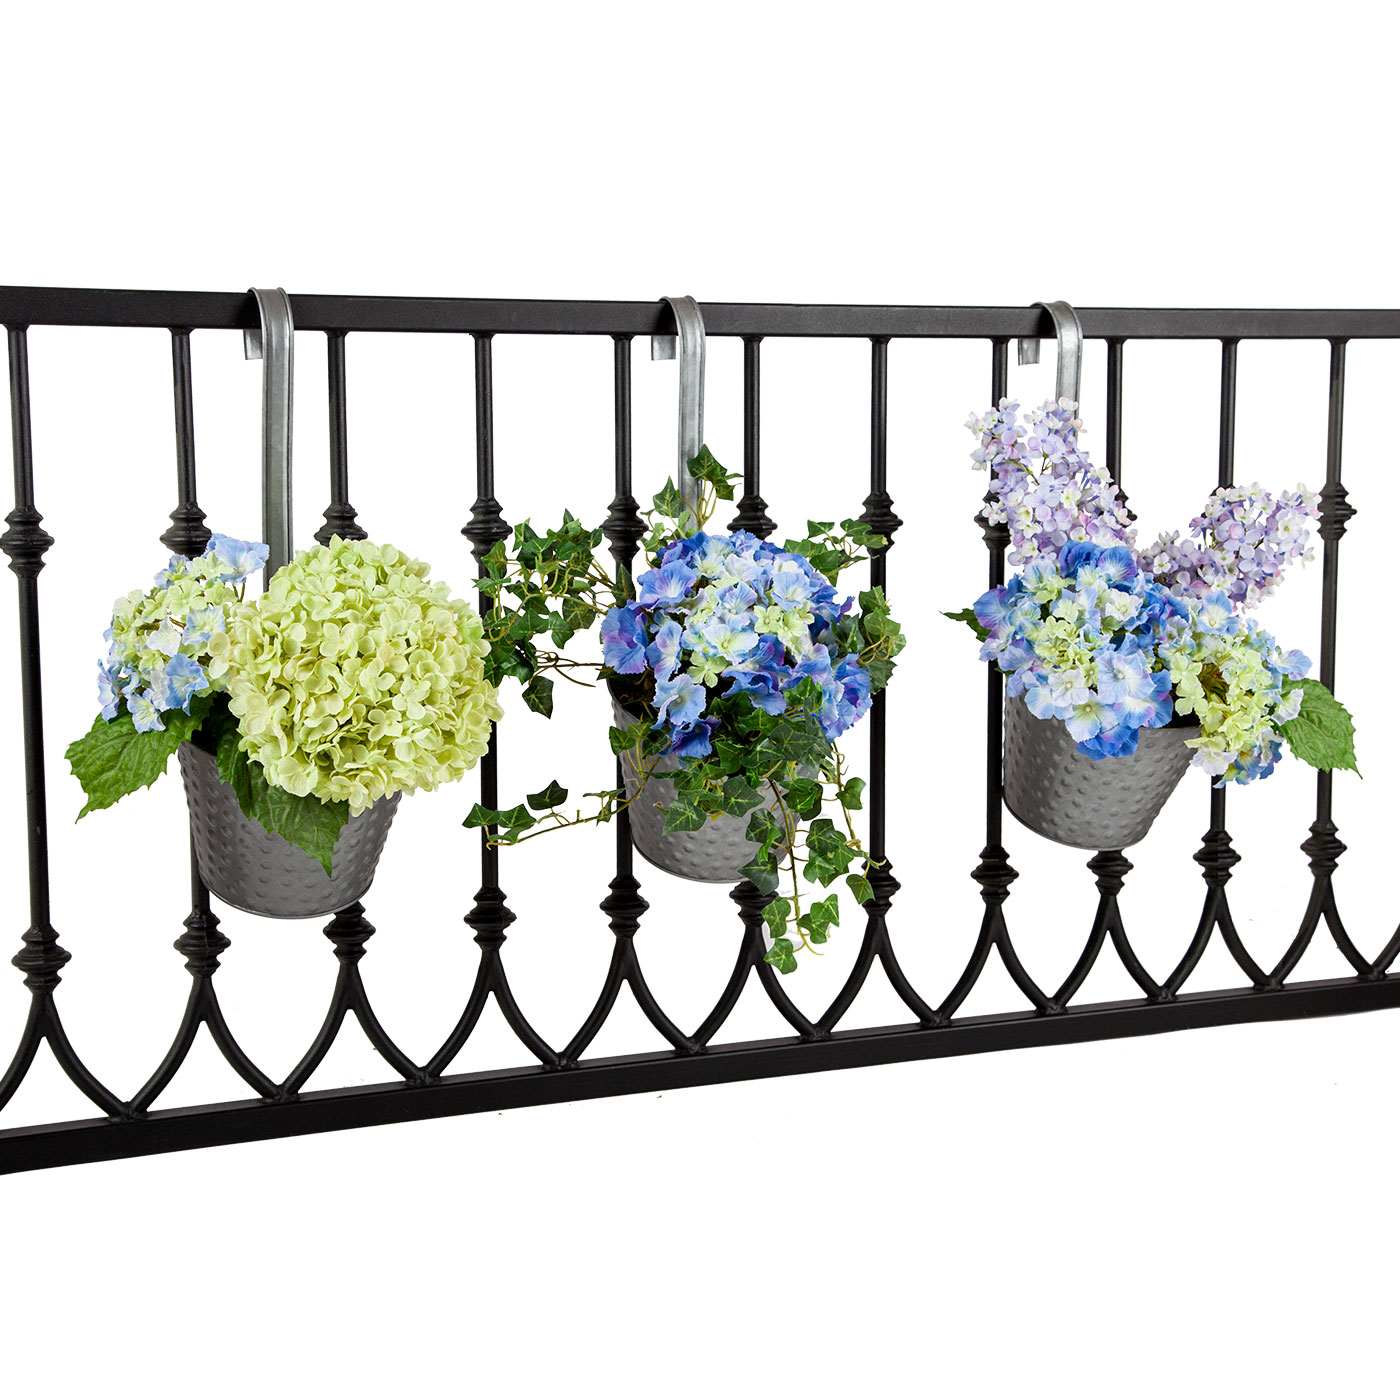 Galvanized tin round balcony planters hooks lattice for Balcony planters